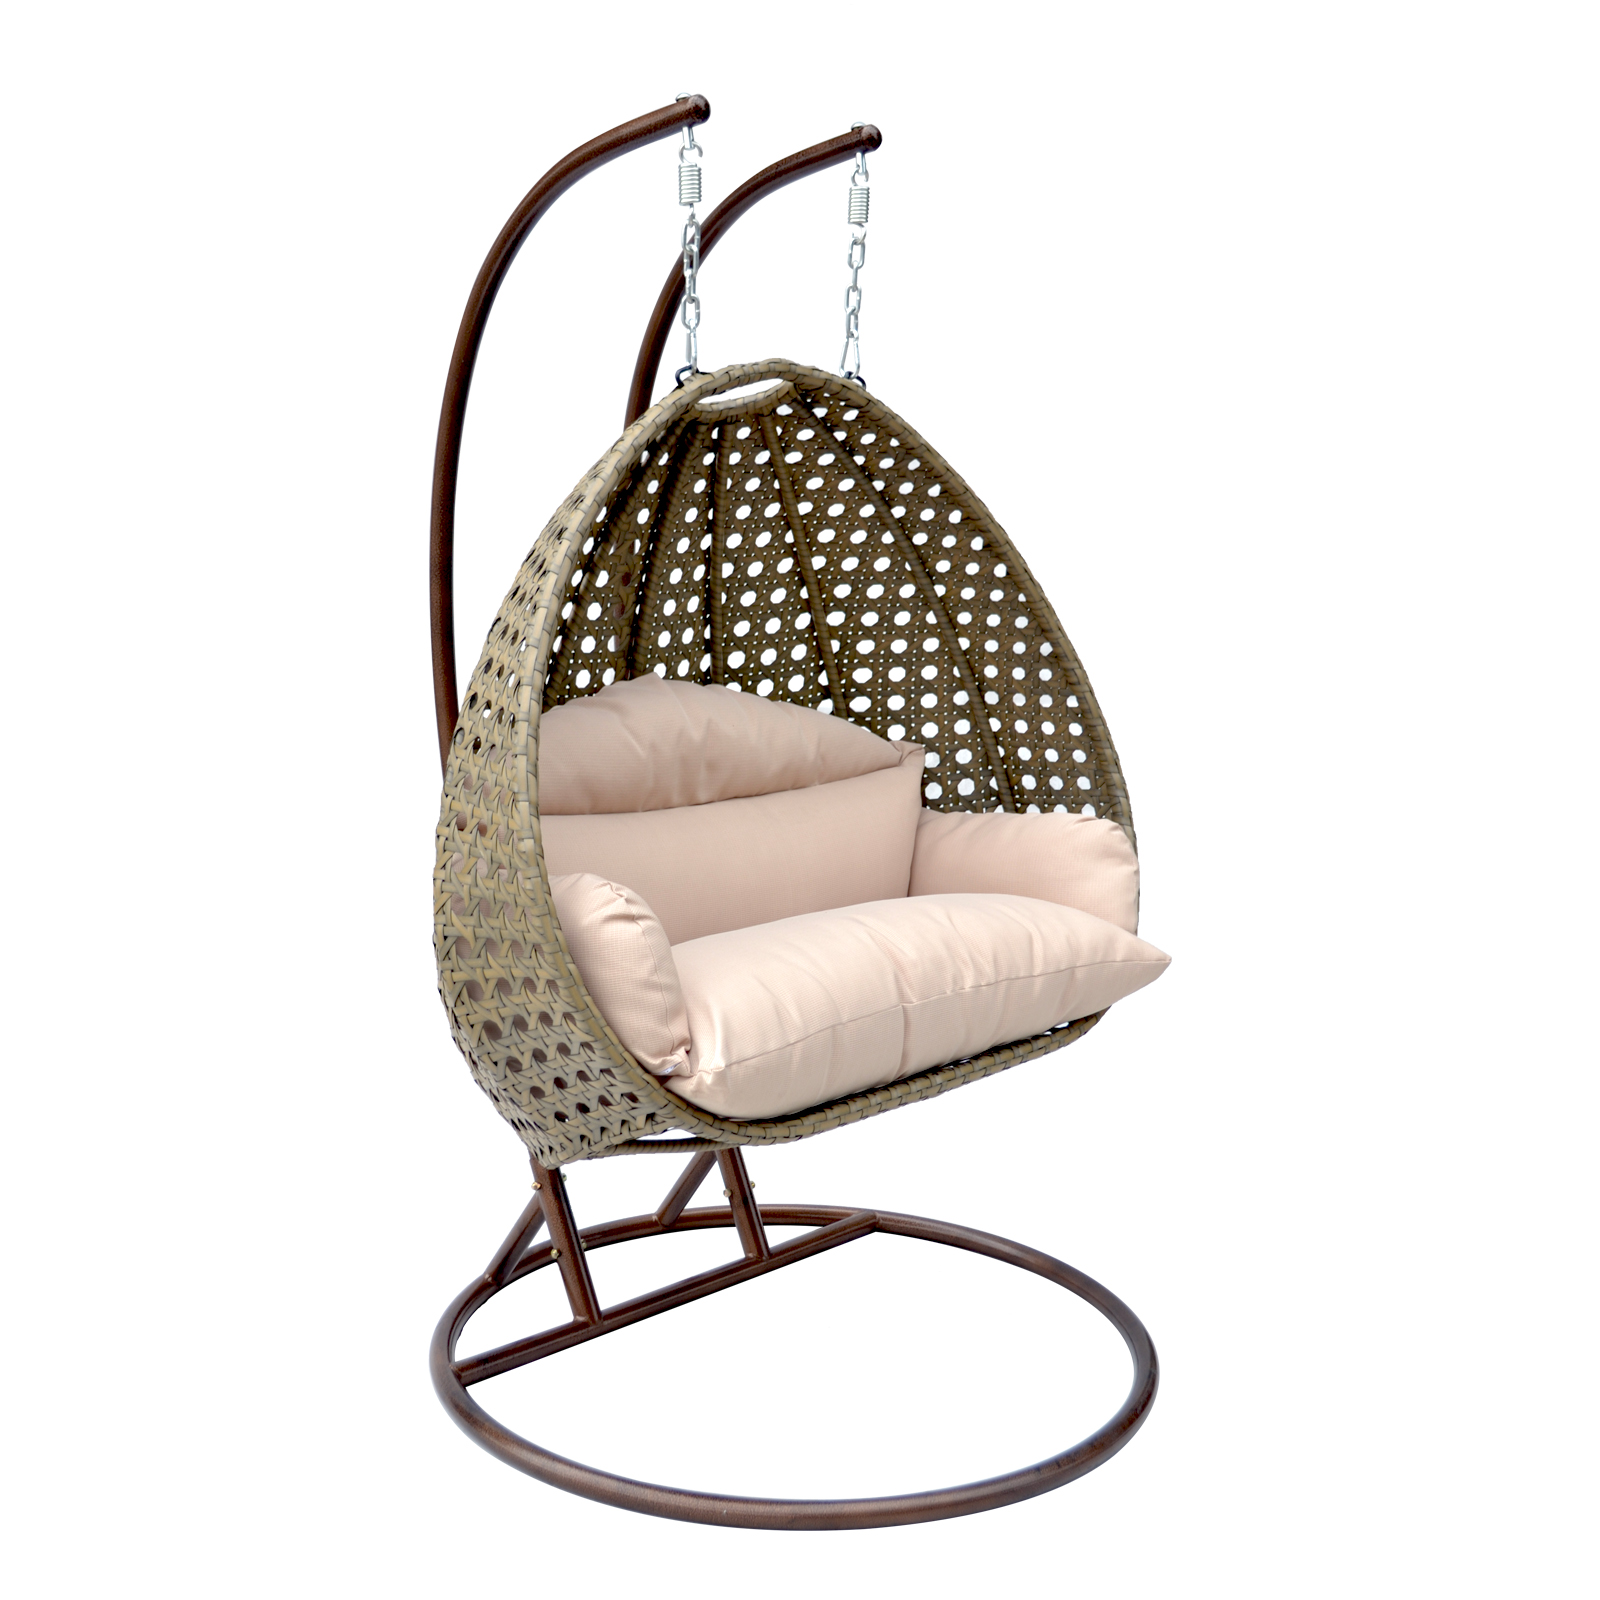 egg chair swing back of organizer 2 person wicker basket patio outdoor